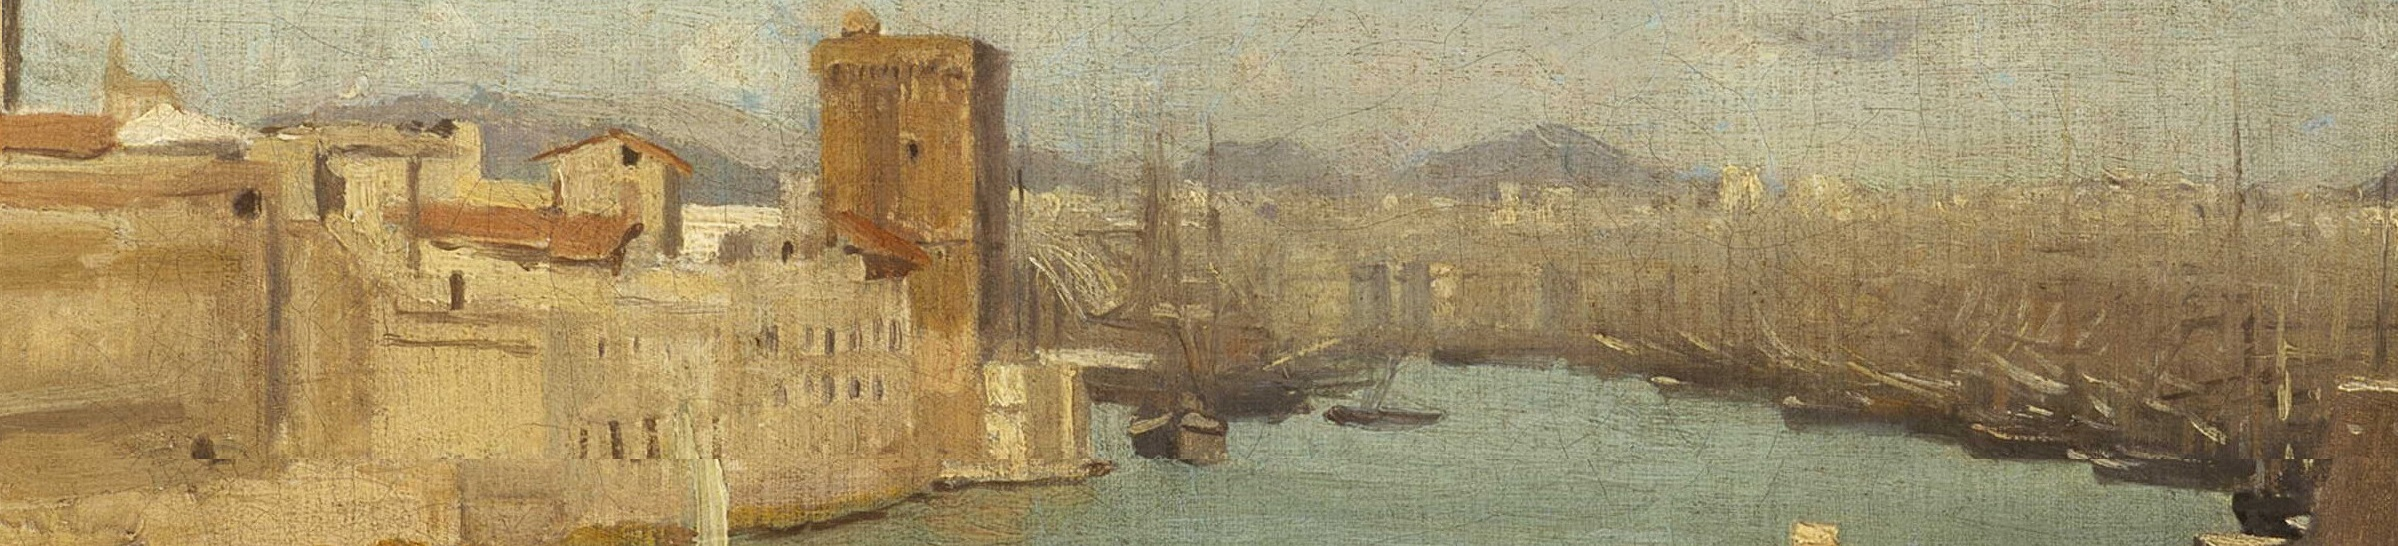 Coffee Conversation: Marseille: The Old Port by Jean-Baptiste-Camille Corot